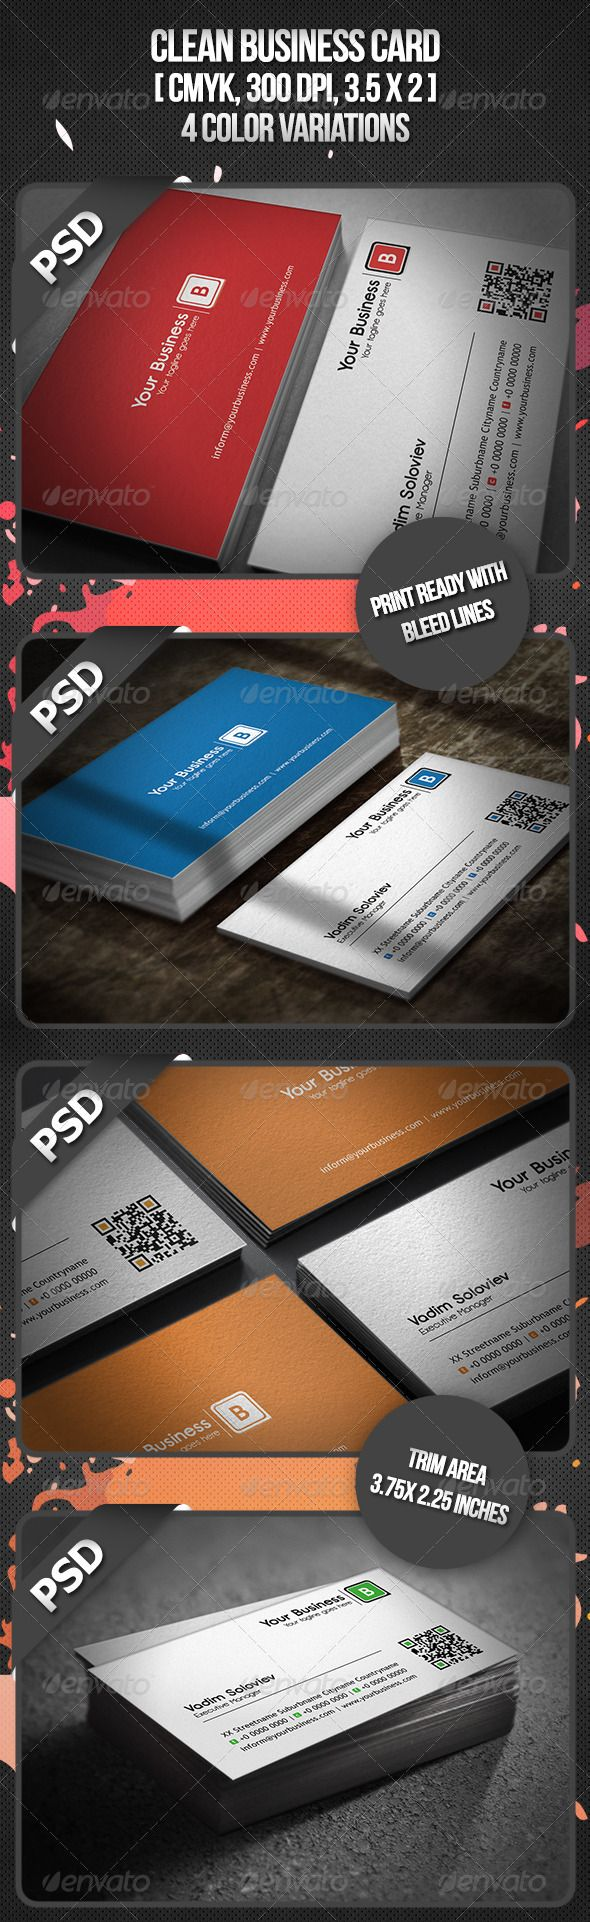 122 Best Business Cards Designs Images On Pinterest Business Card